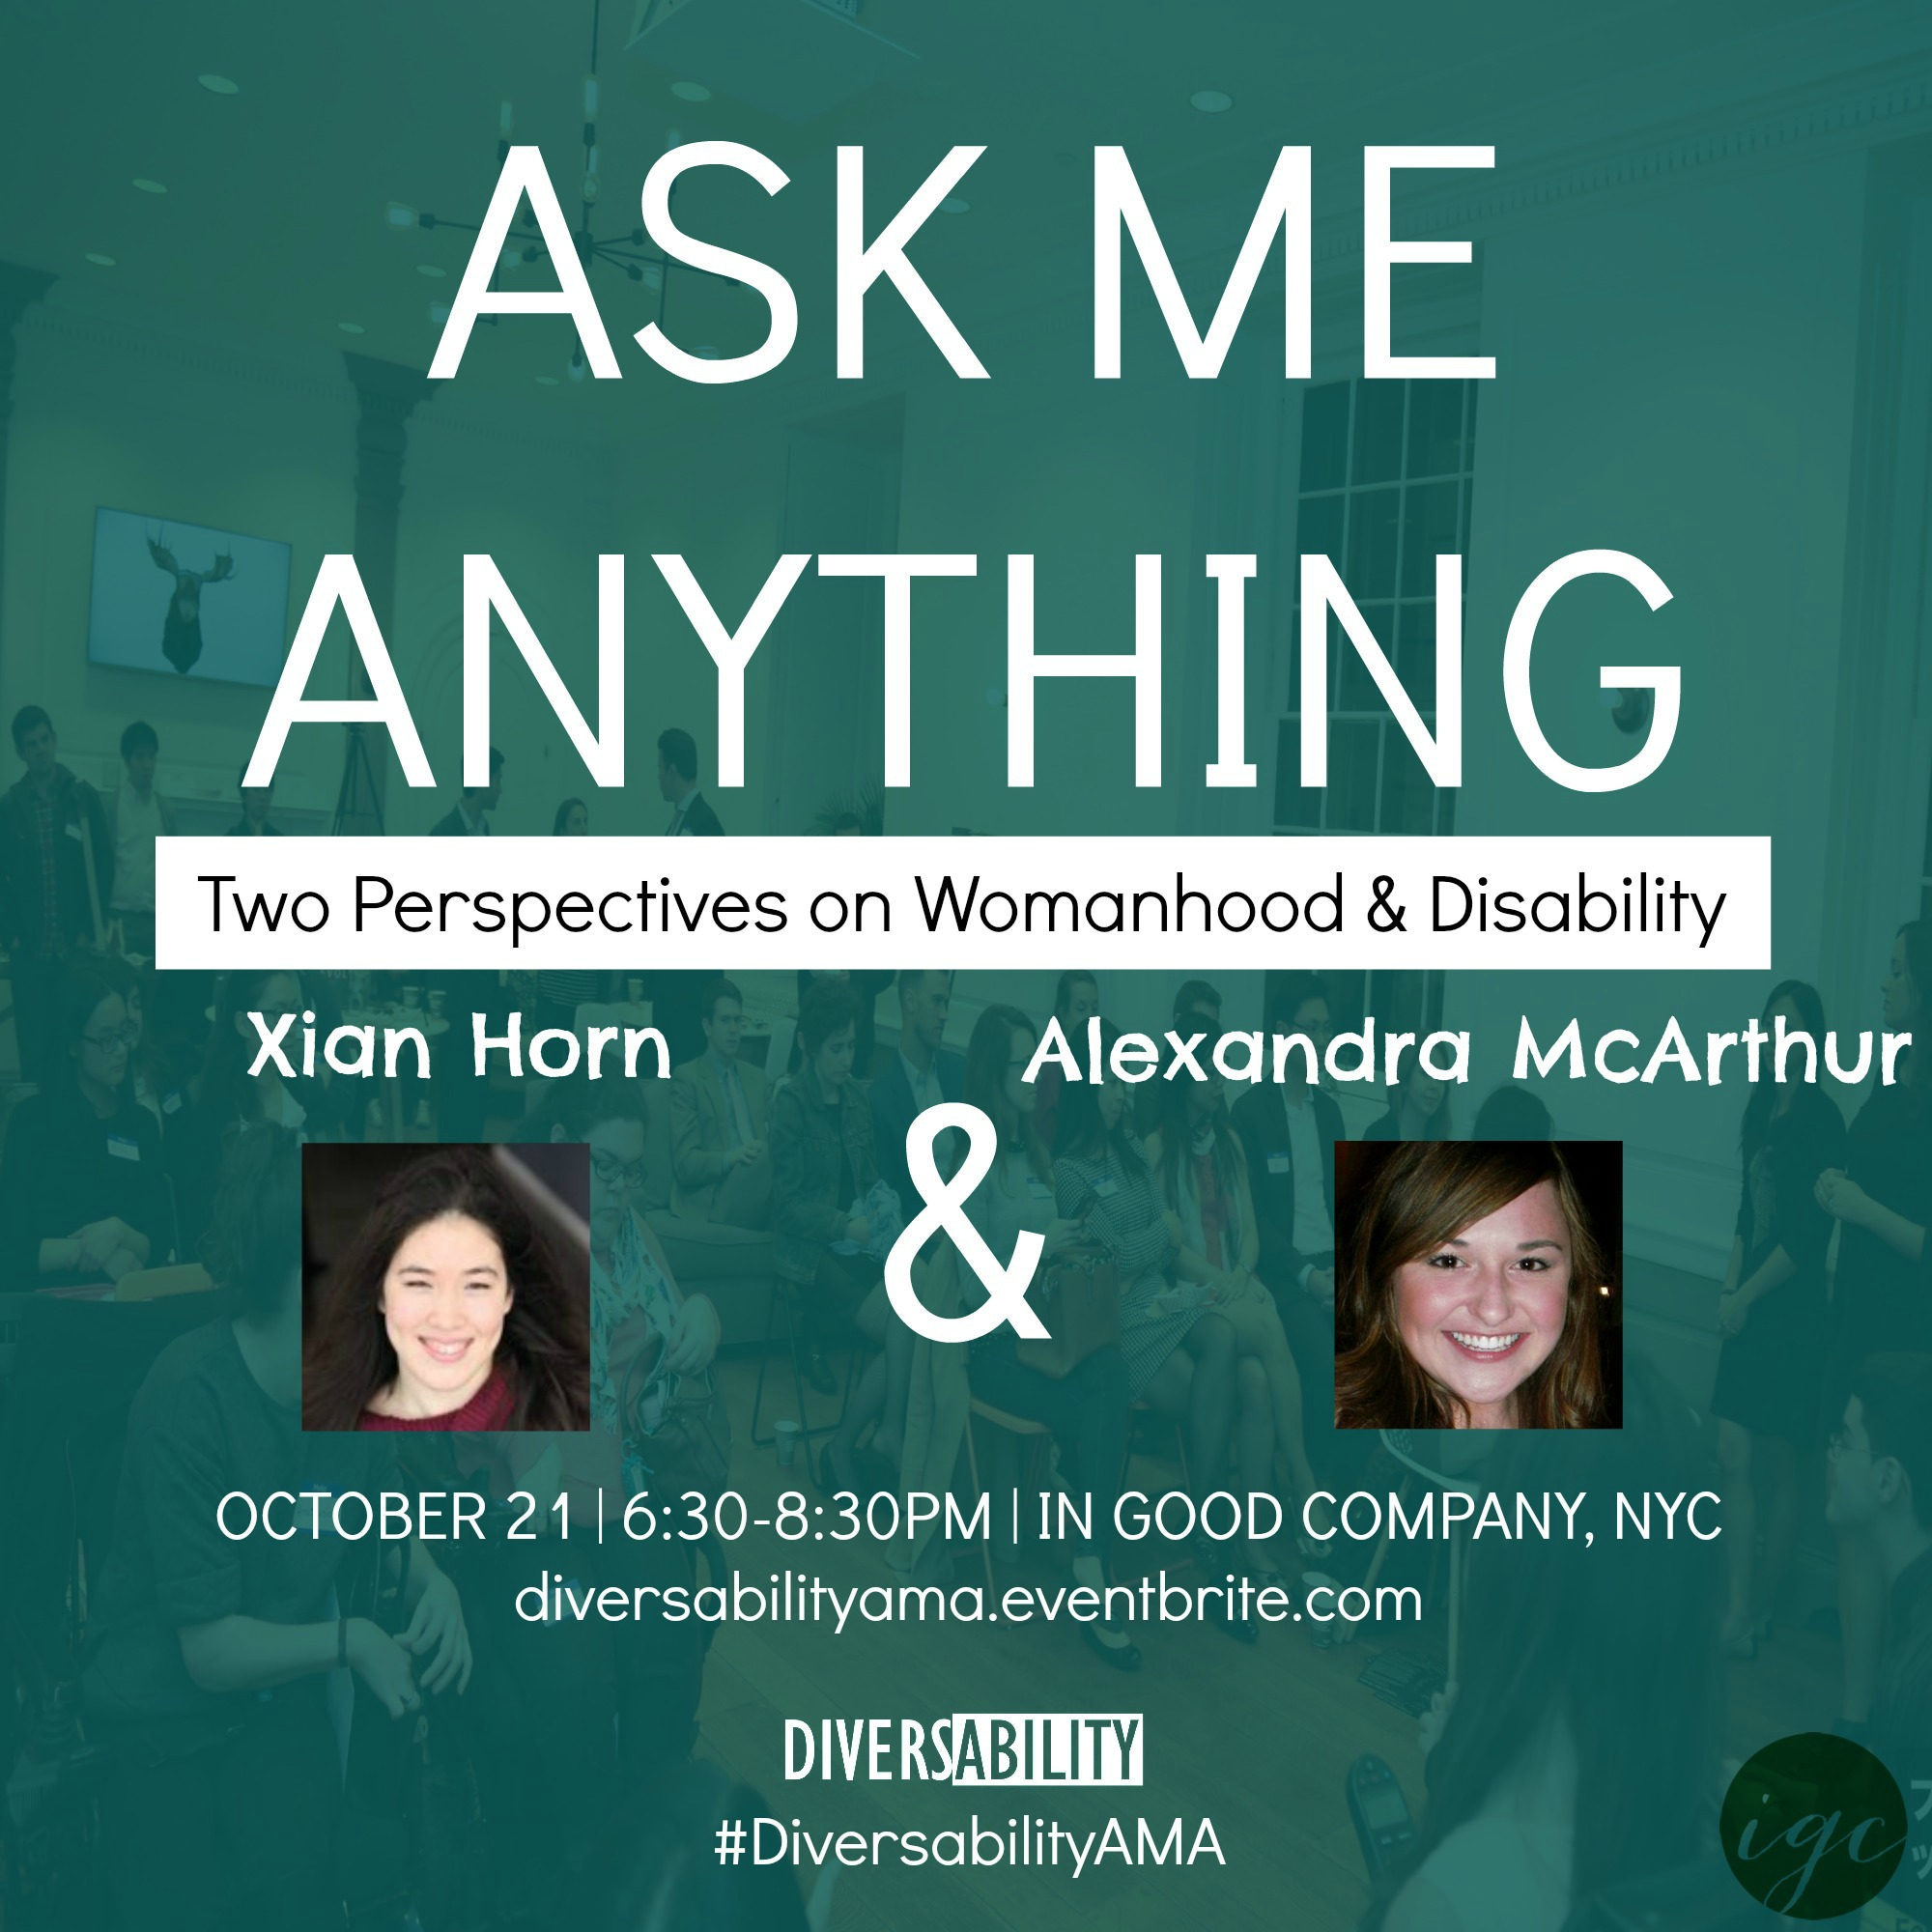 diversability ask me anything event details